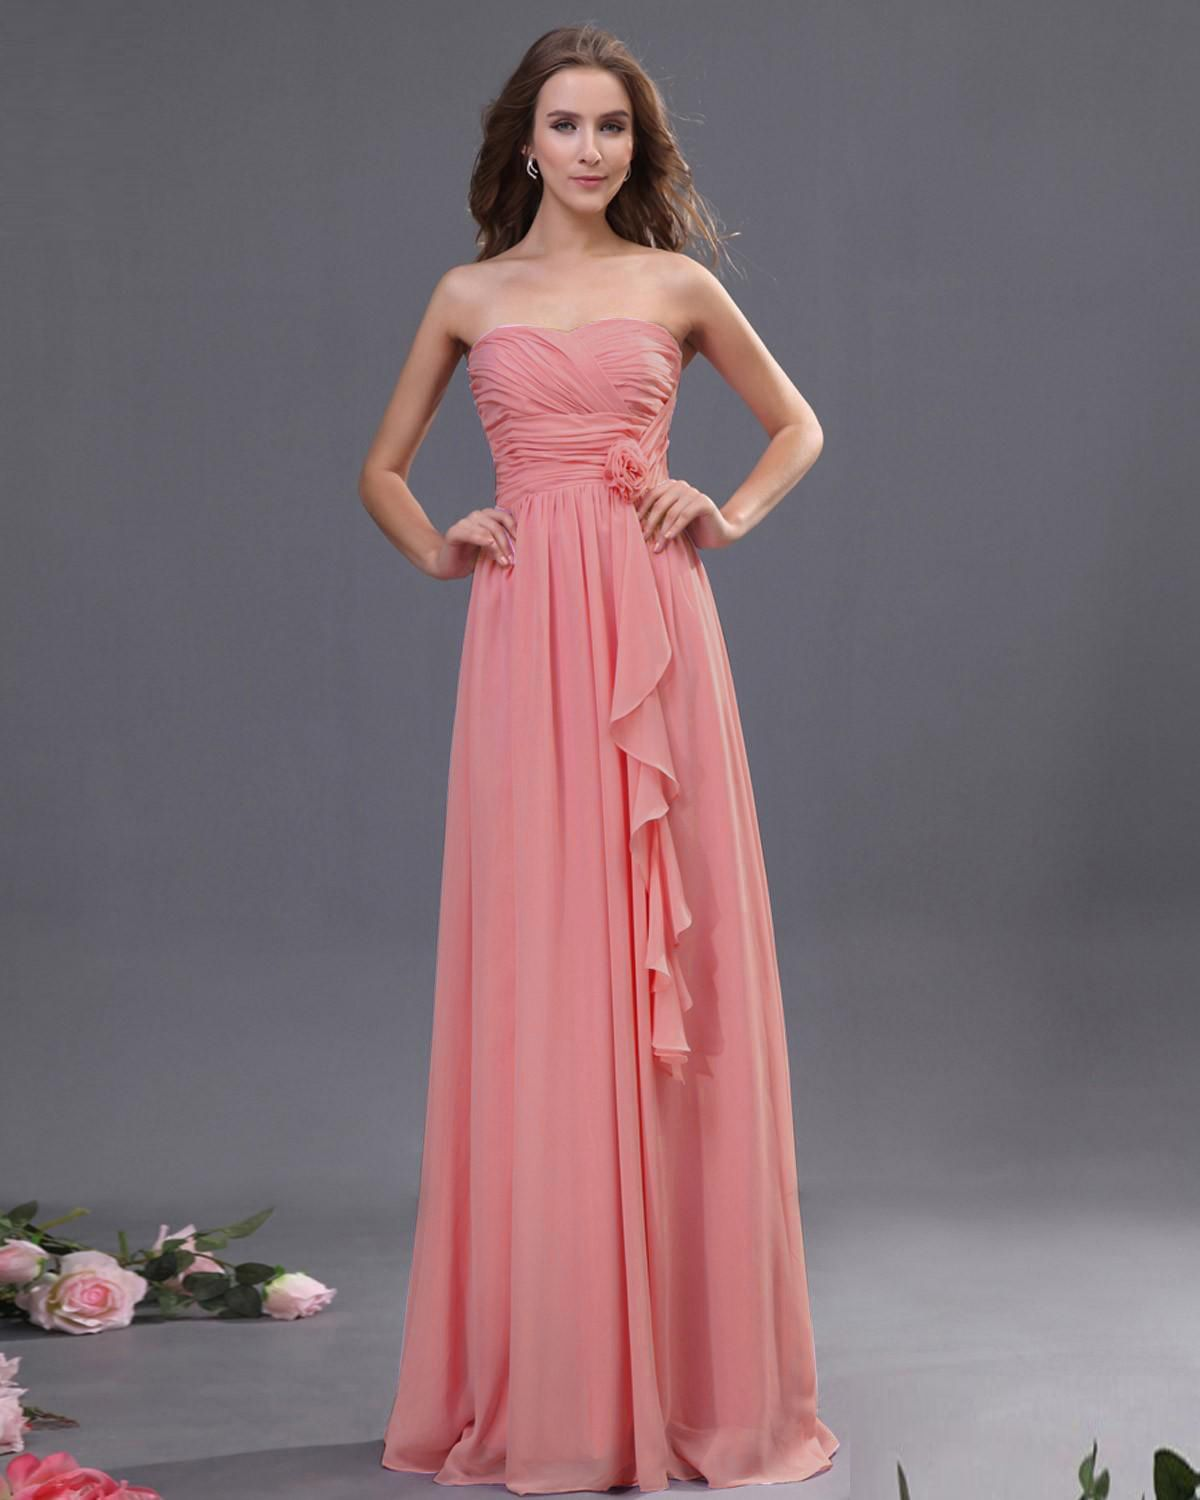 Sweetheart Floor Length Bridesmaid Dress With Floral waistline in ...